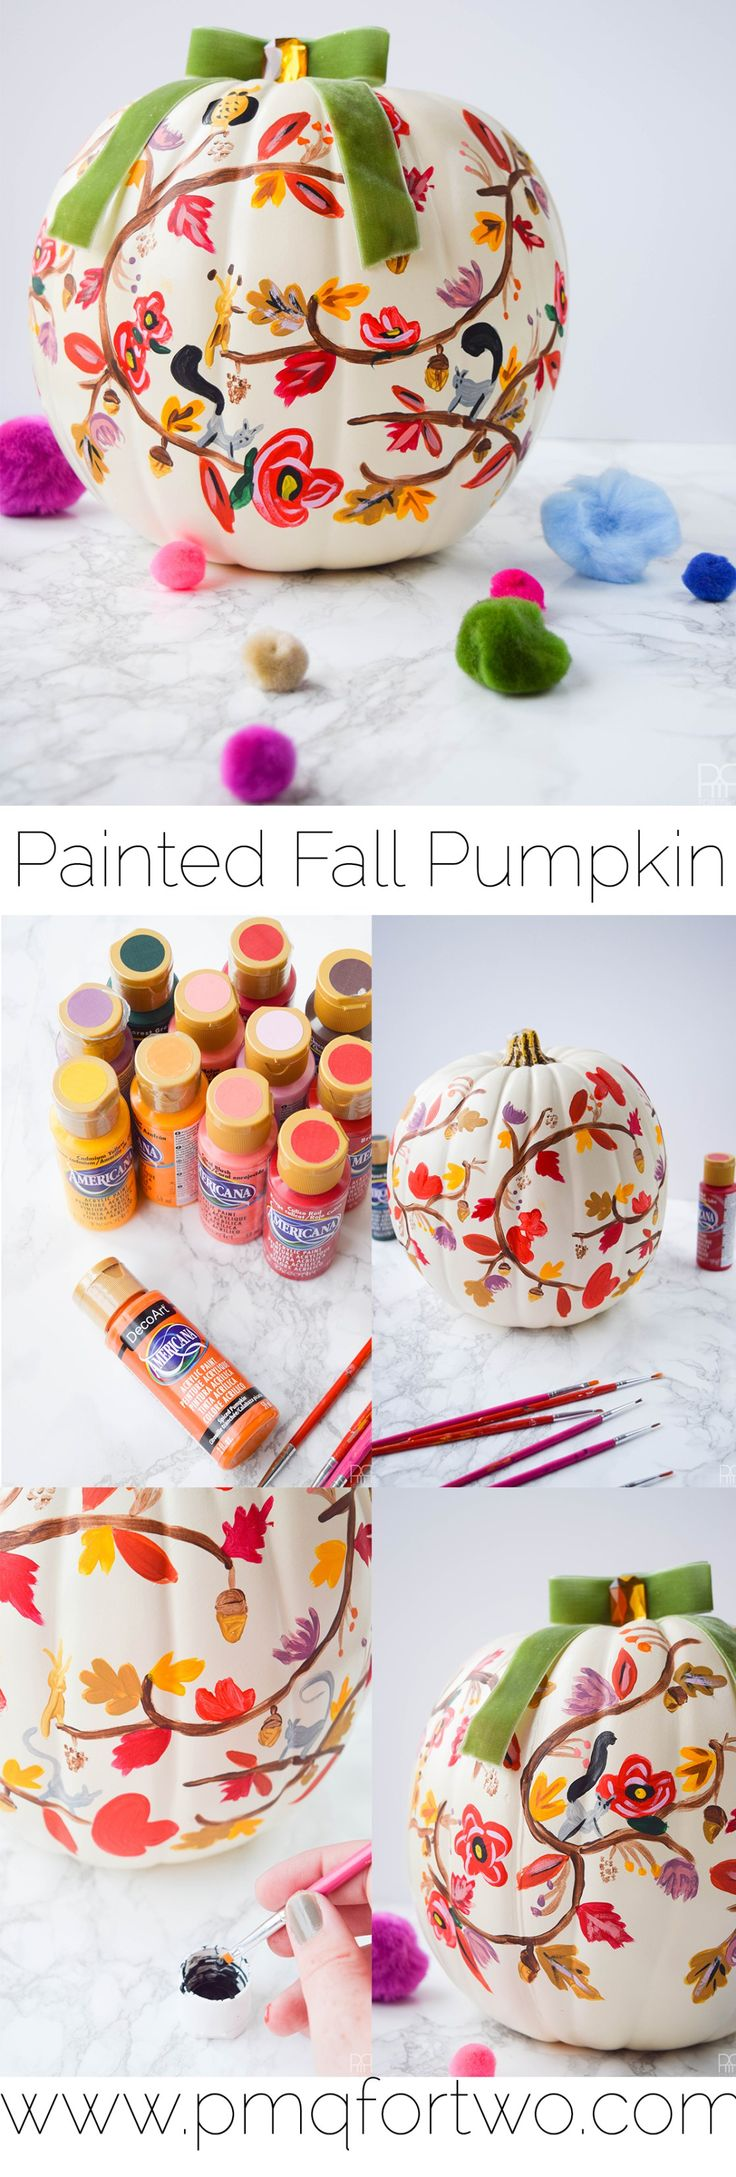 .~Painted Fall Pumpkin by PMQ for Two decoartprojects~.